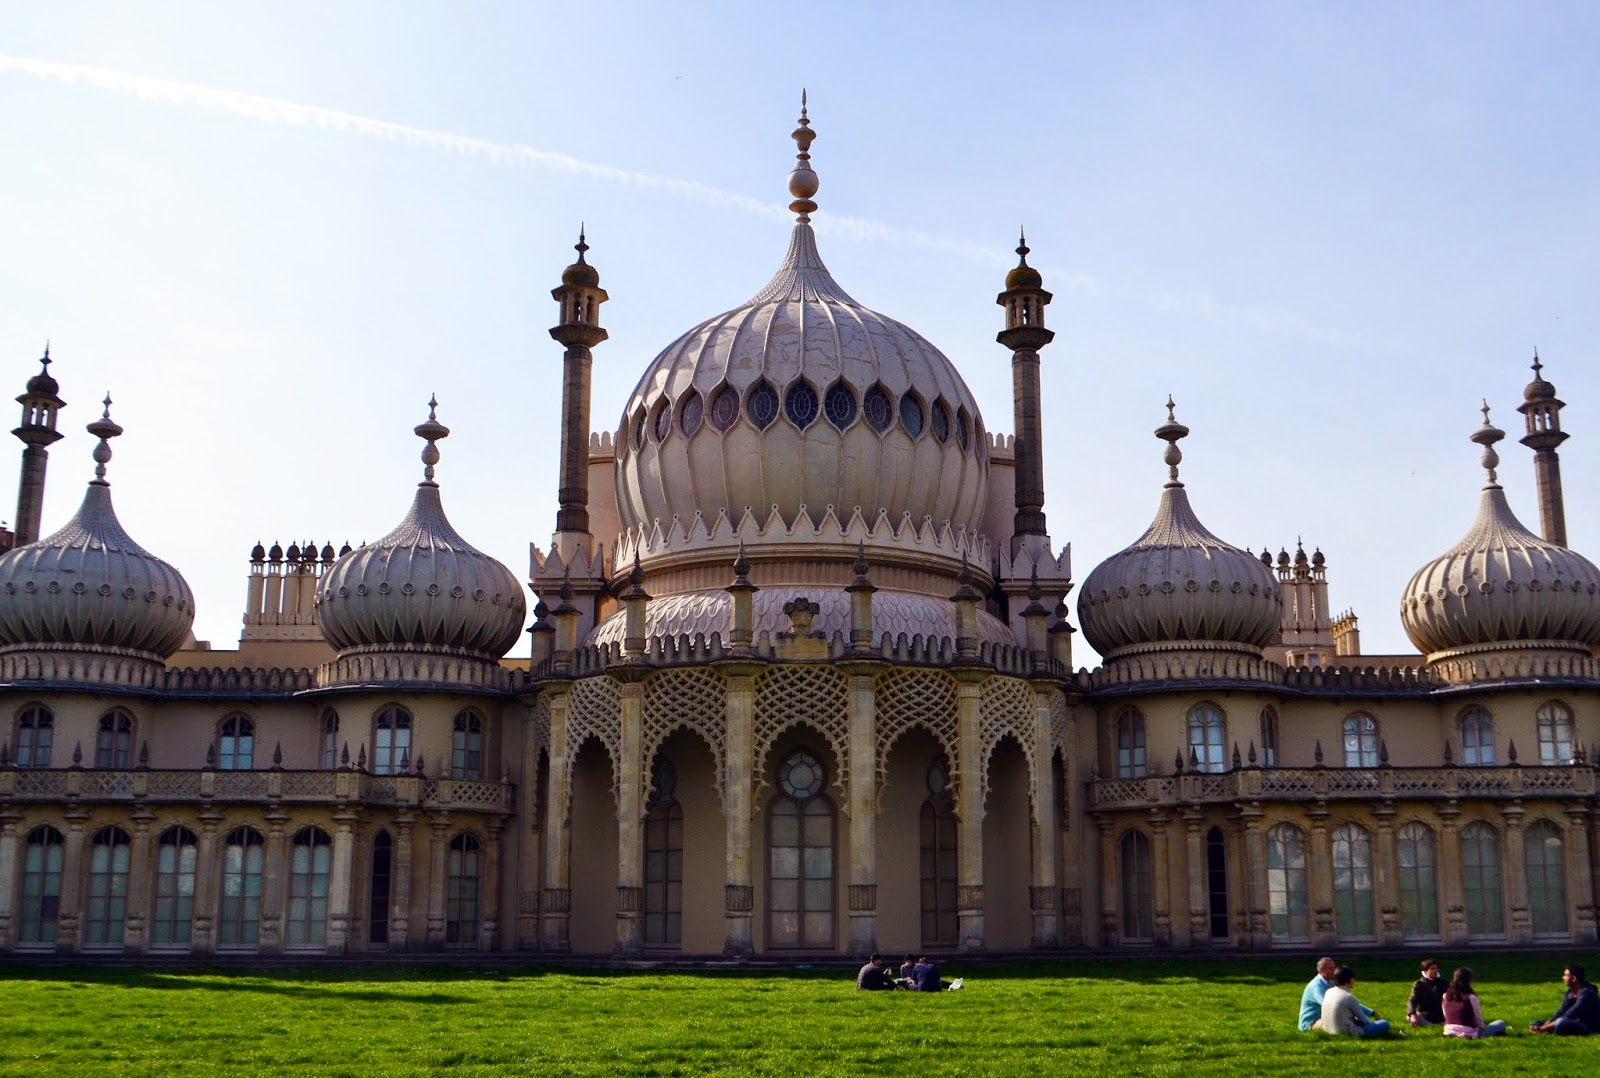 a front view of Brighton Pavillion